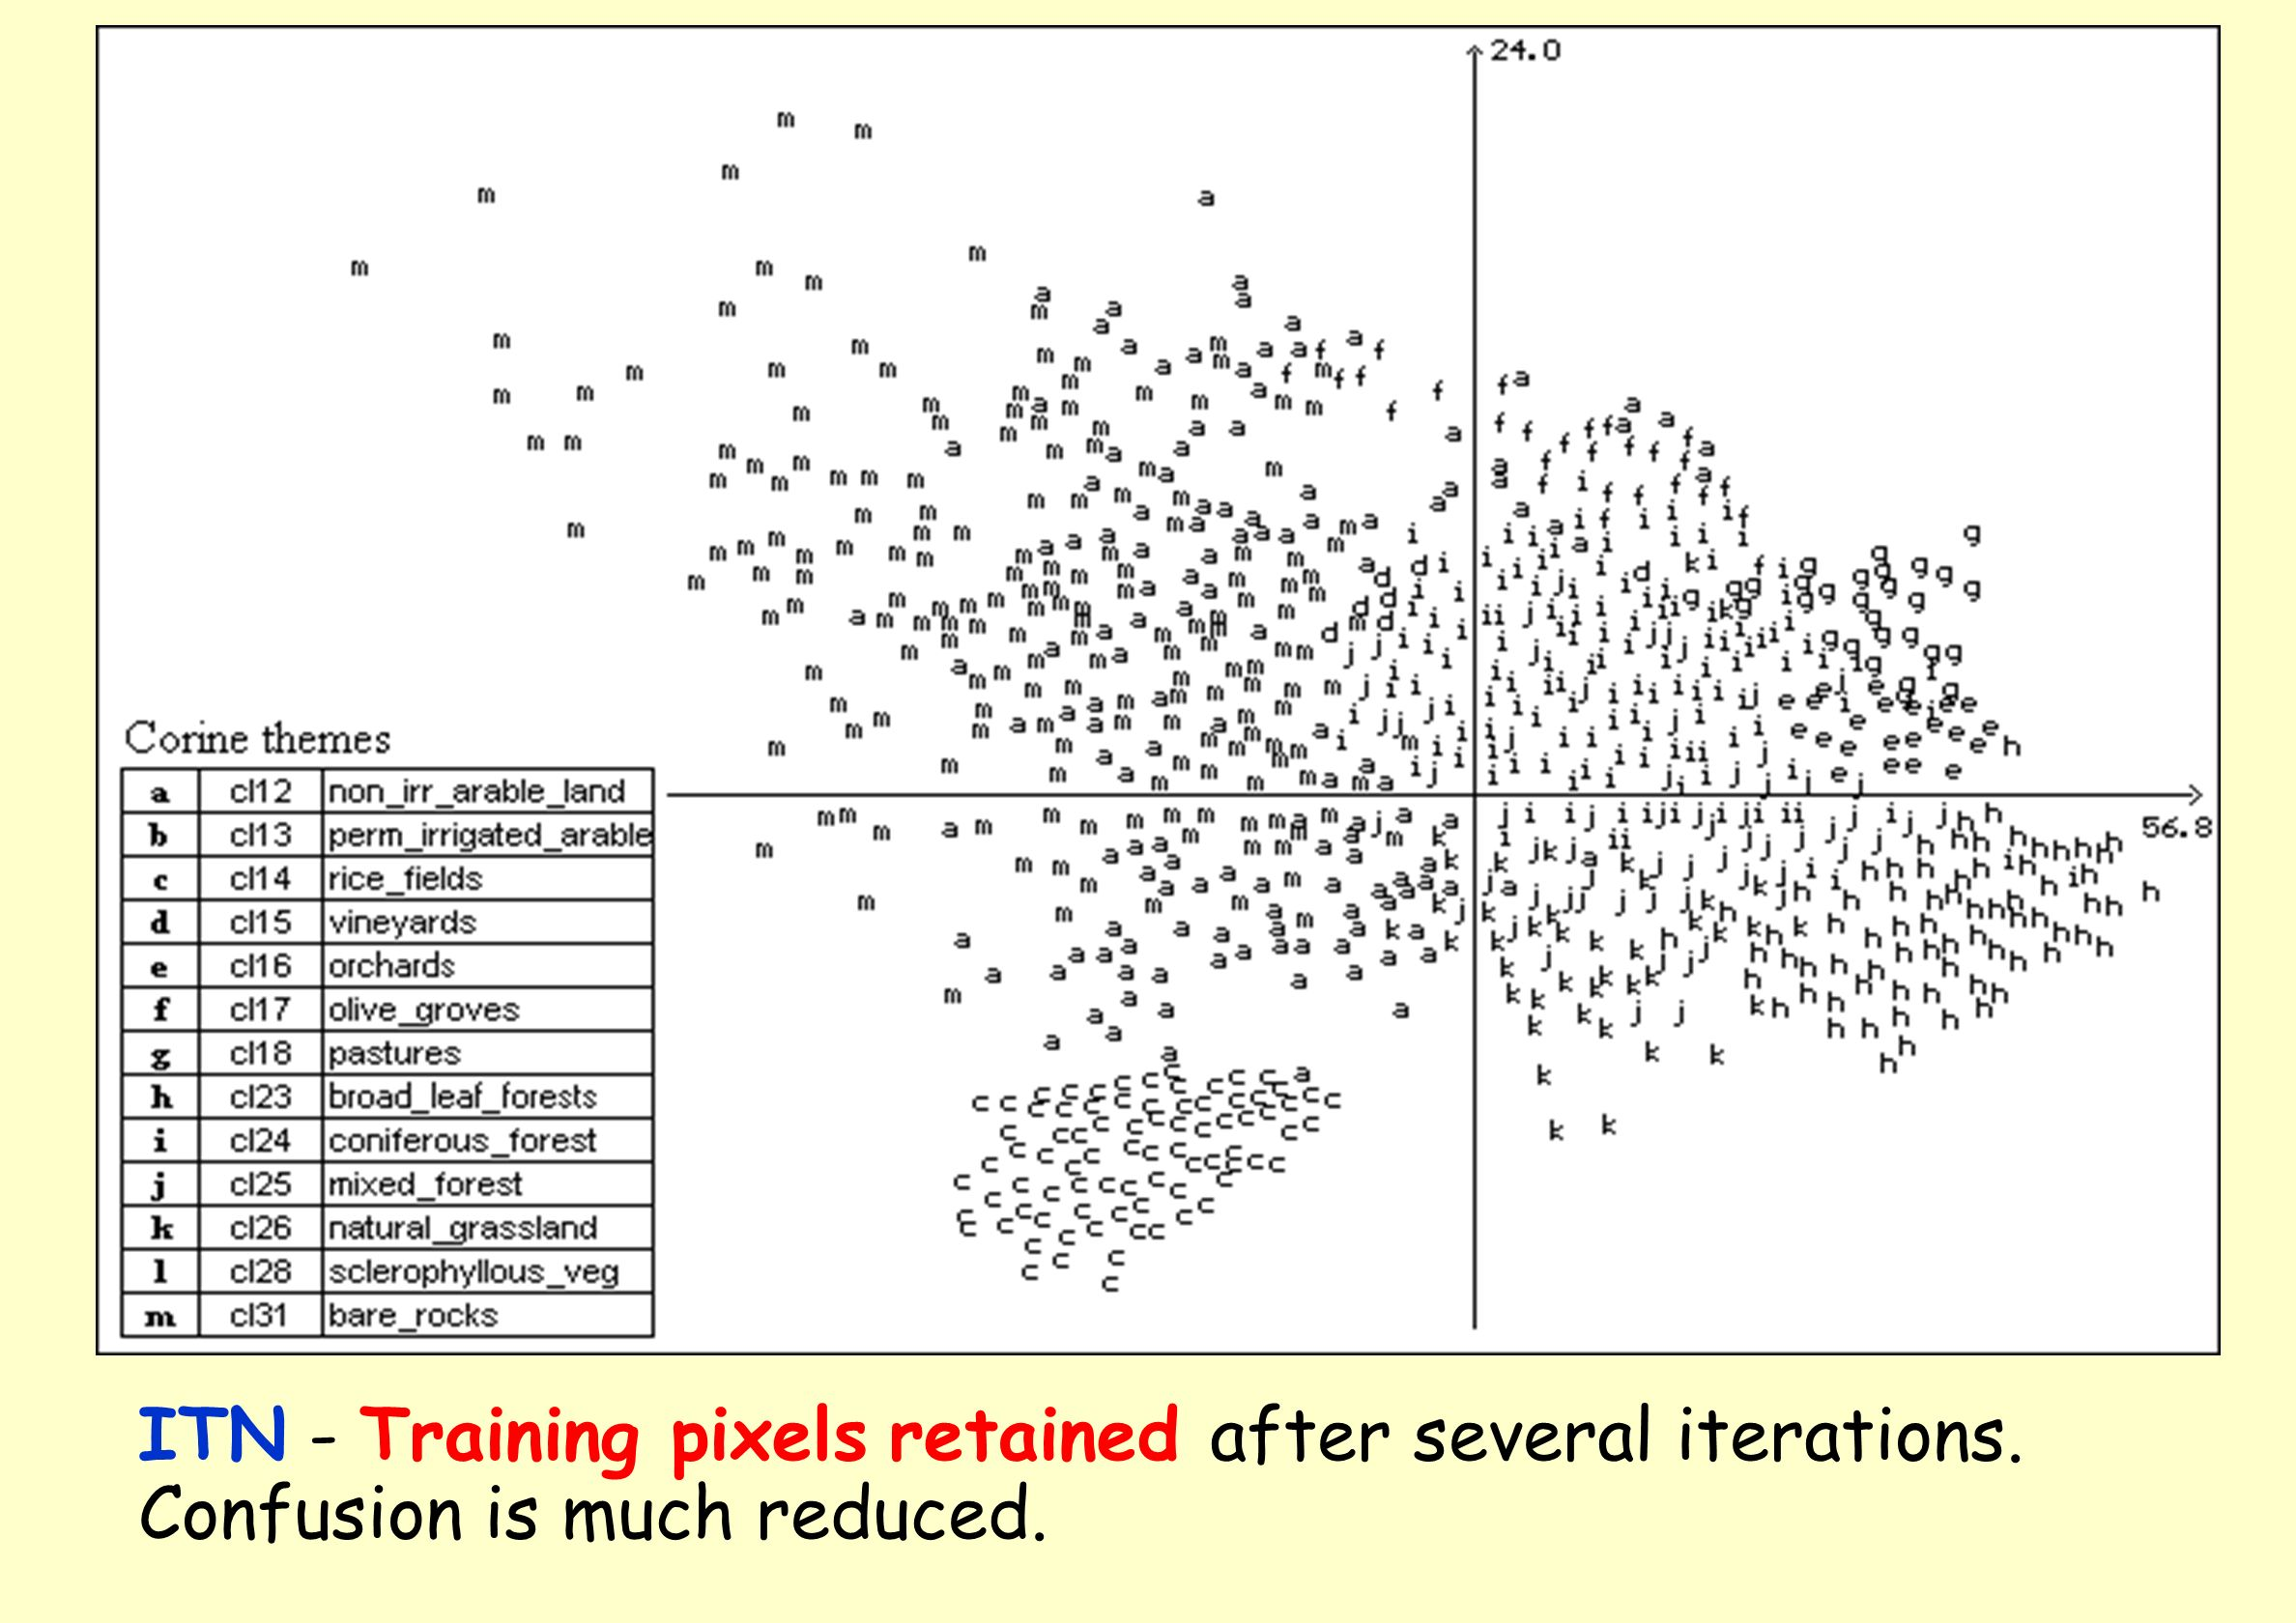 ITN - Training pixels retained after several iterations